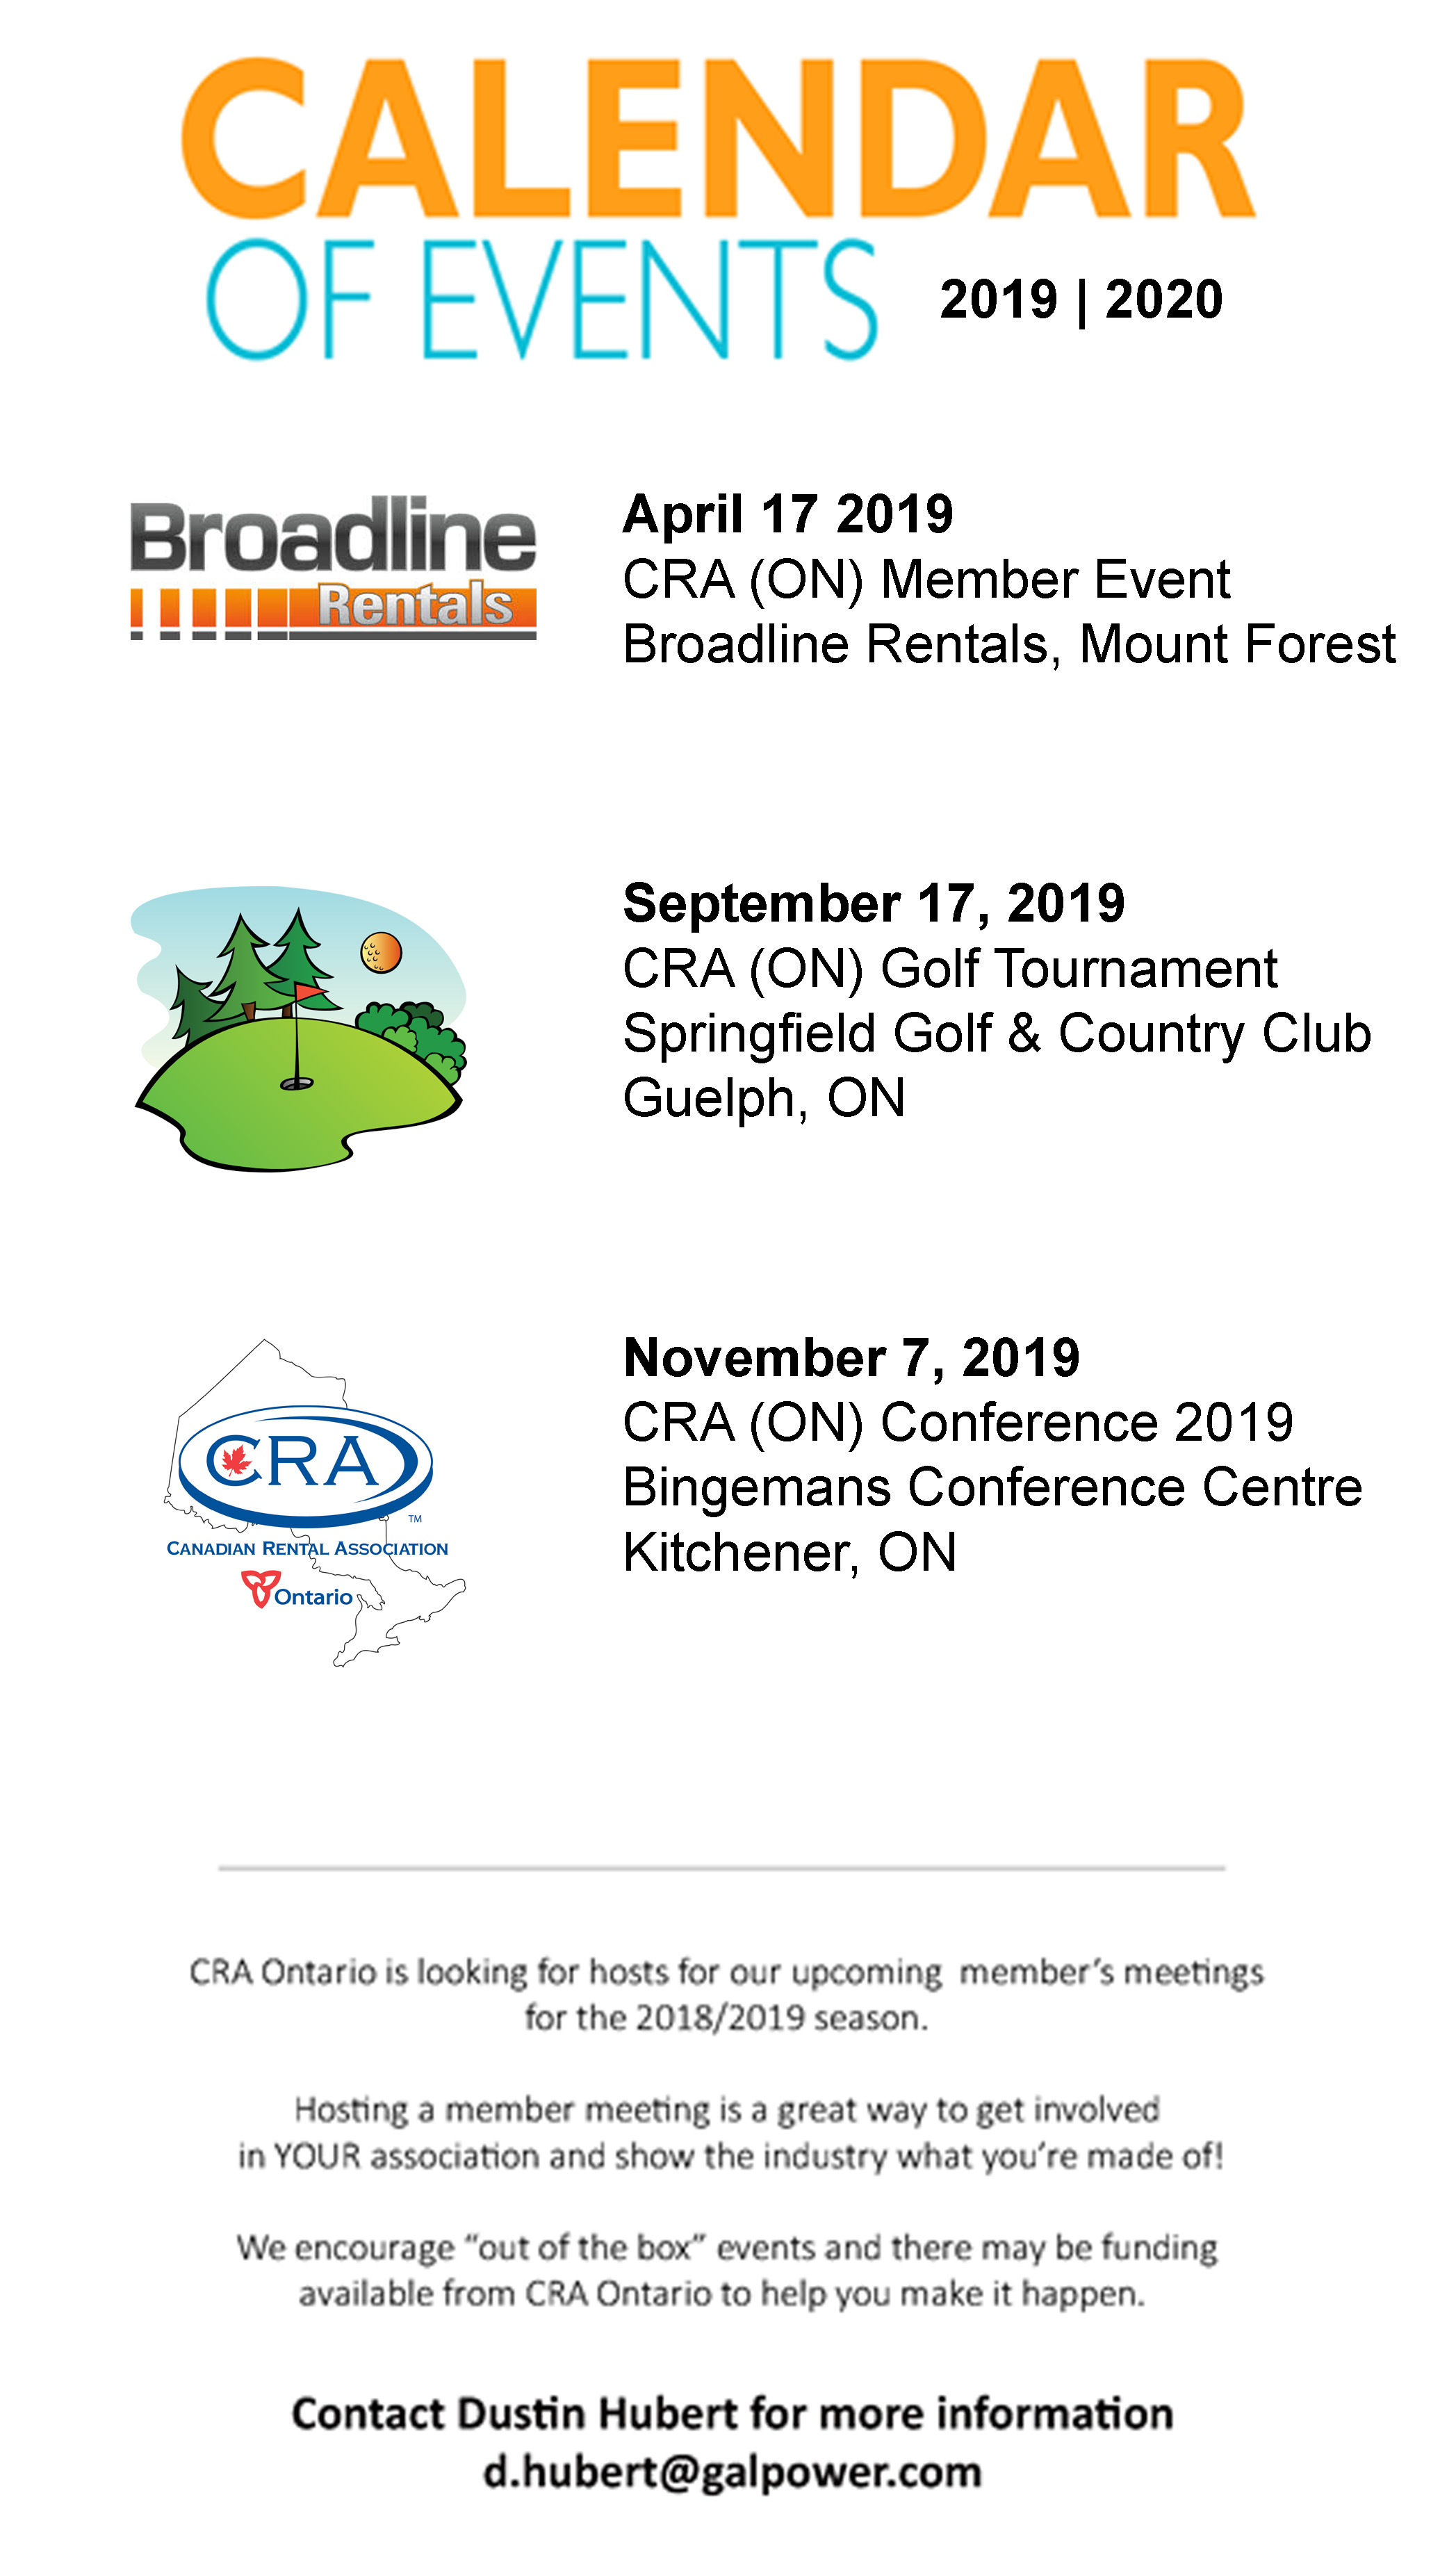 2020 Events Calendar Calendar of Events 2019 2020 | Canadian Rental Association [CRA